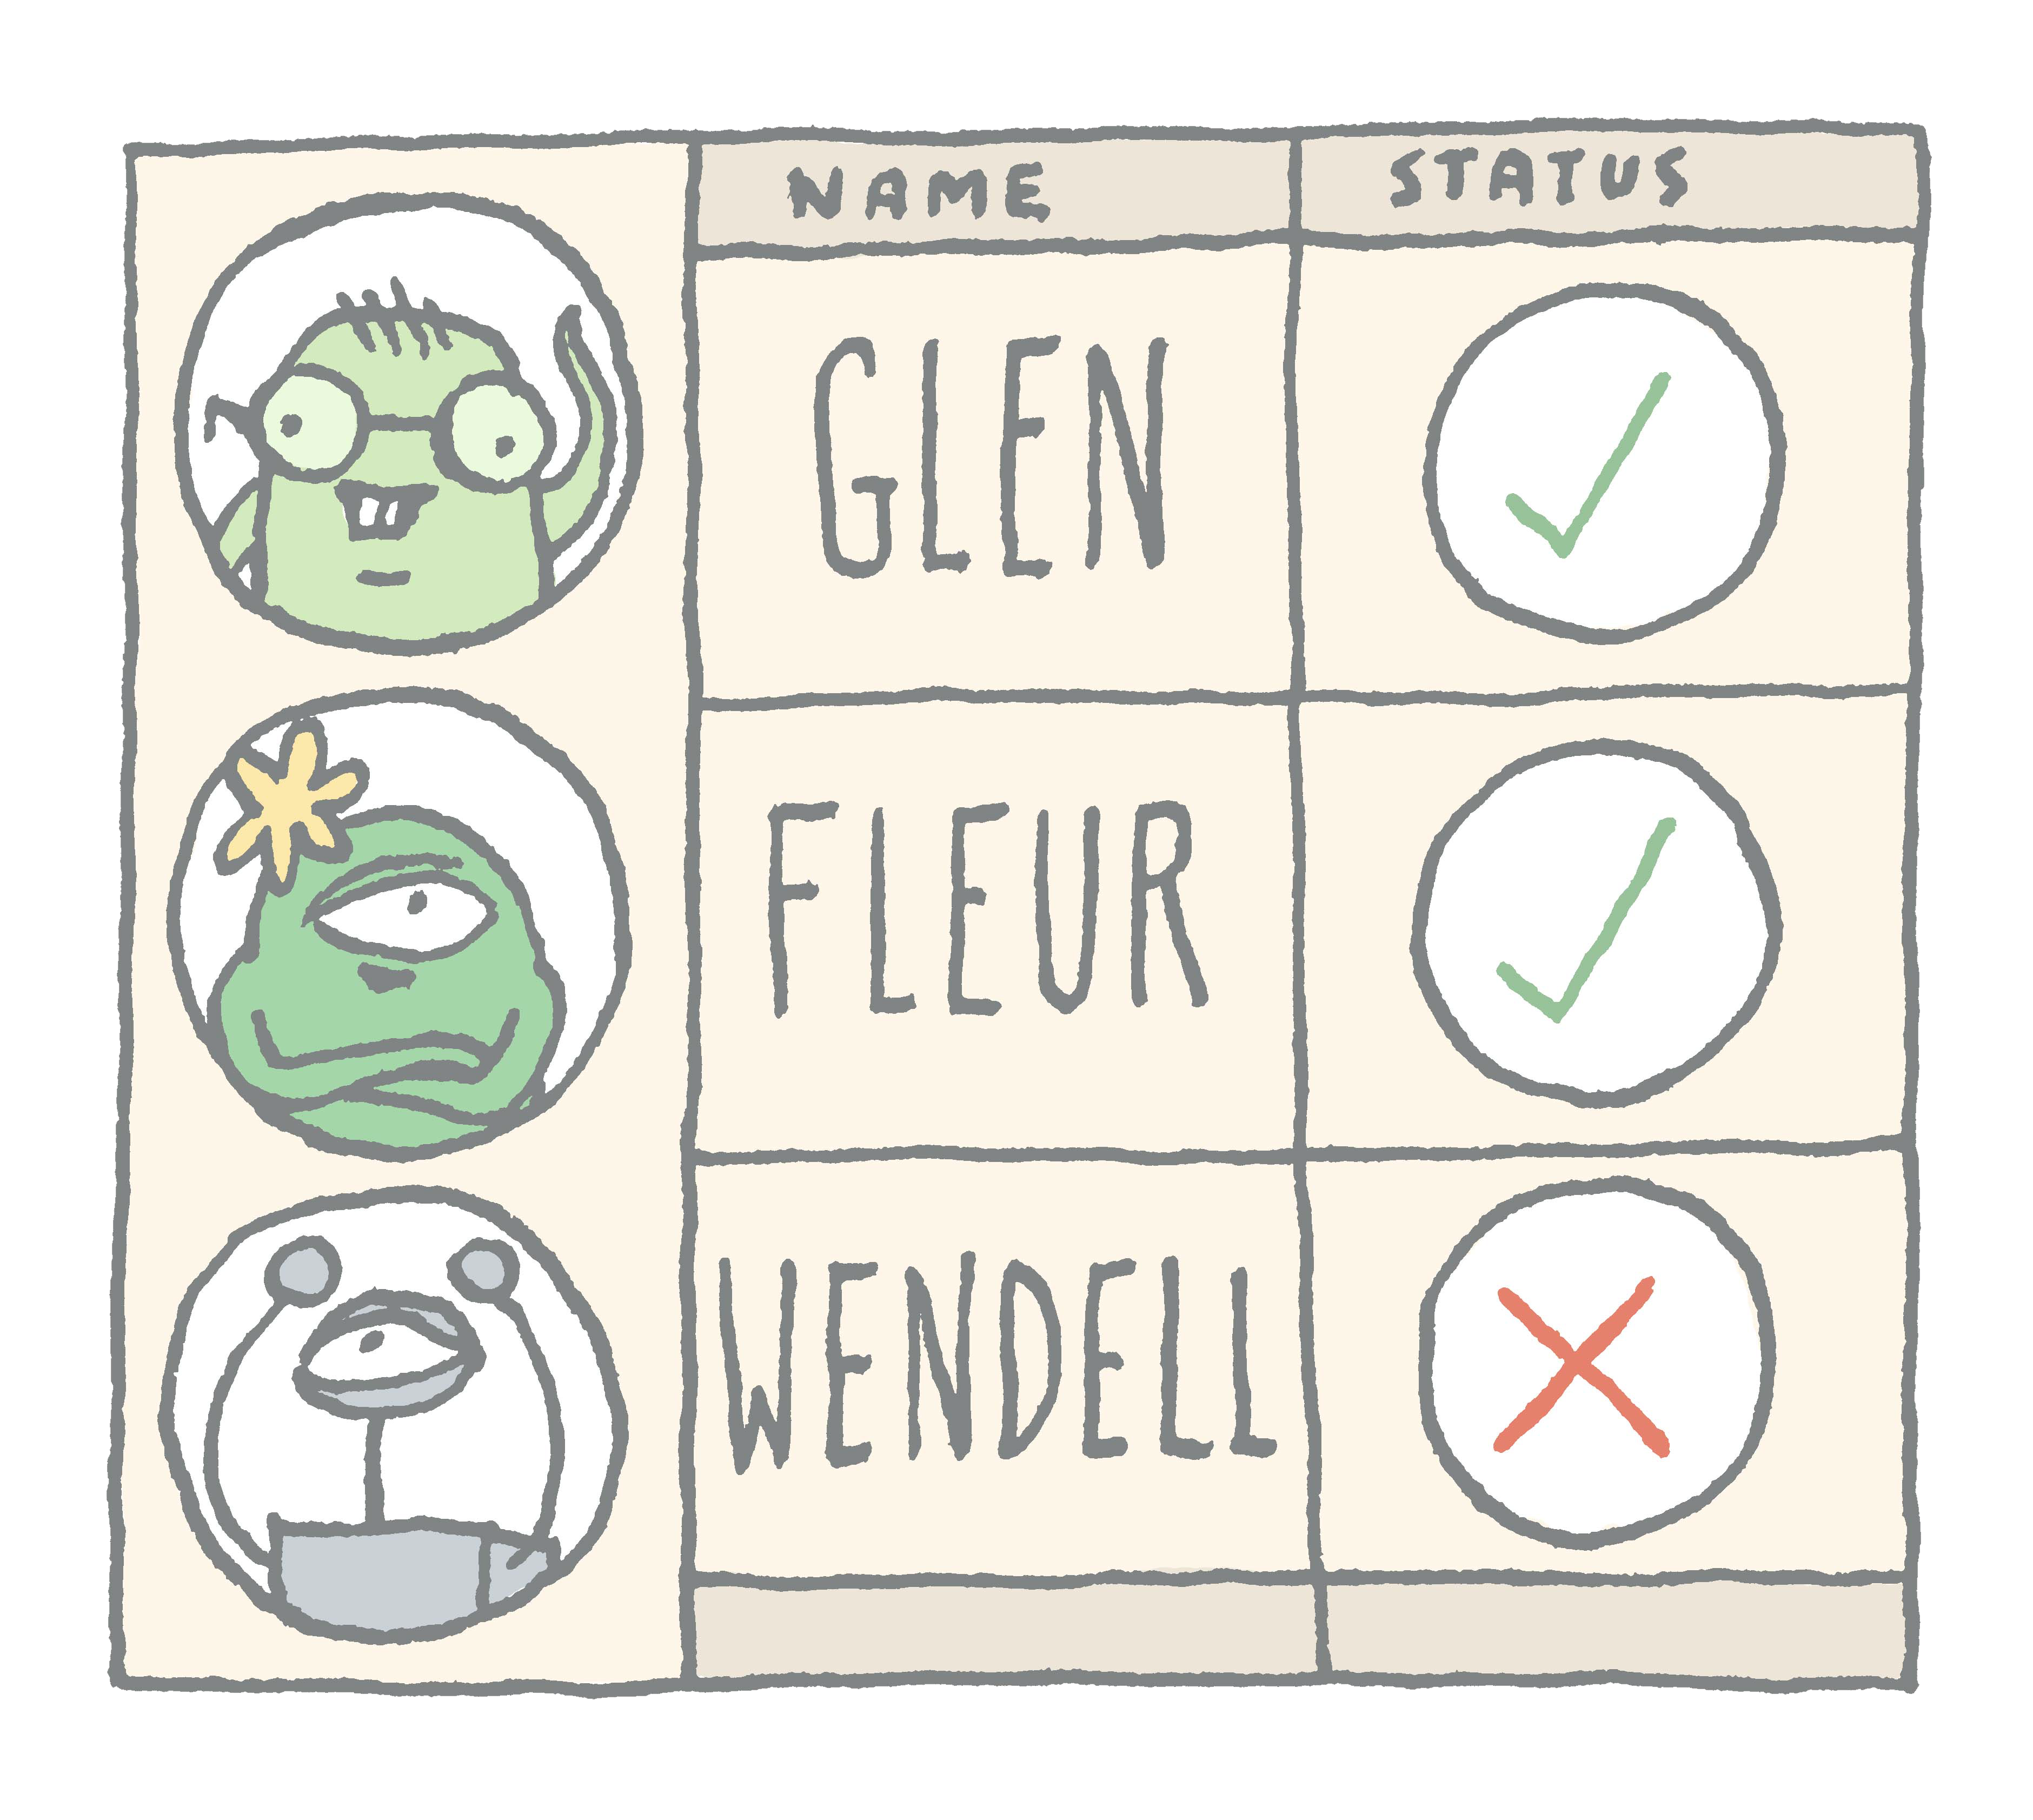 A training matrix of Zenners, showing that Glen and Fleur are complaint, while Wendell is not. This illustrates how ZenQMS gives instant visibility into training.